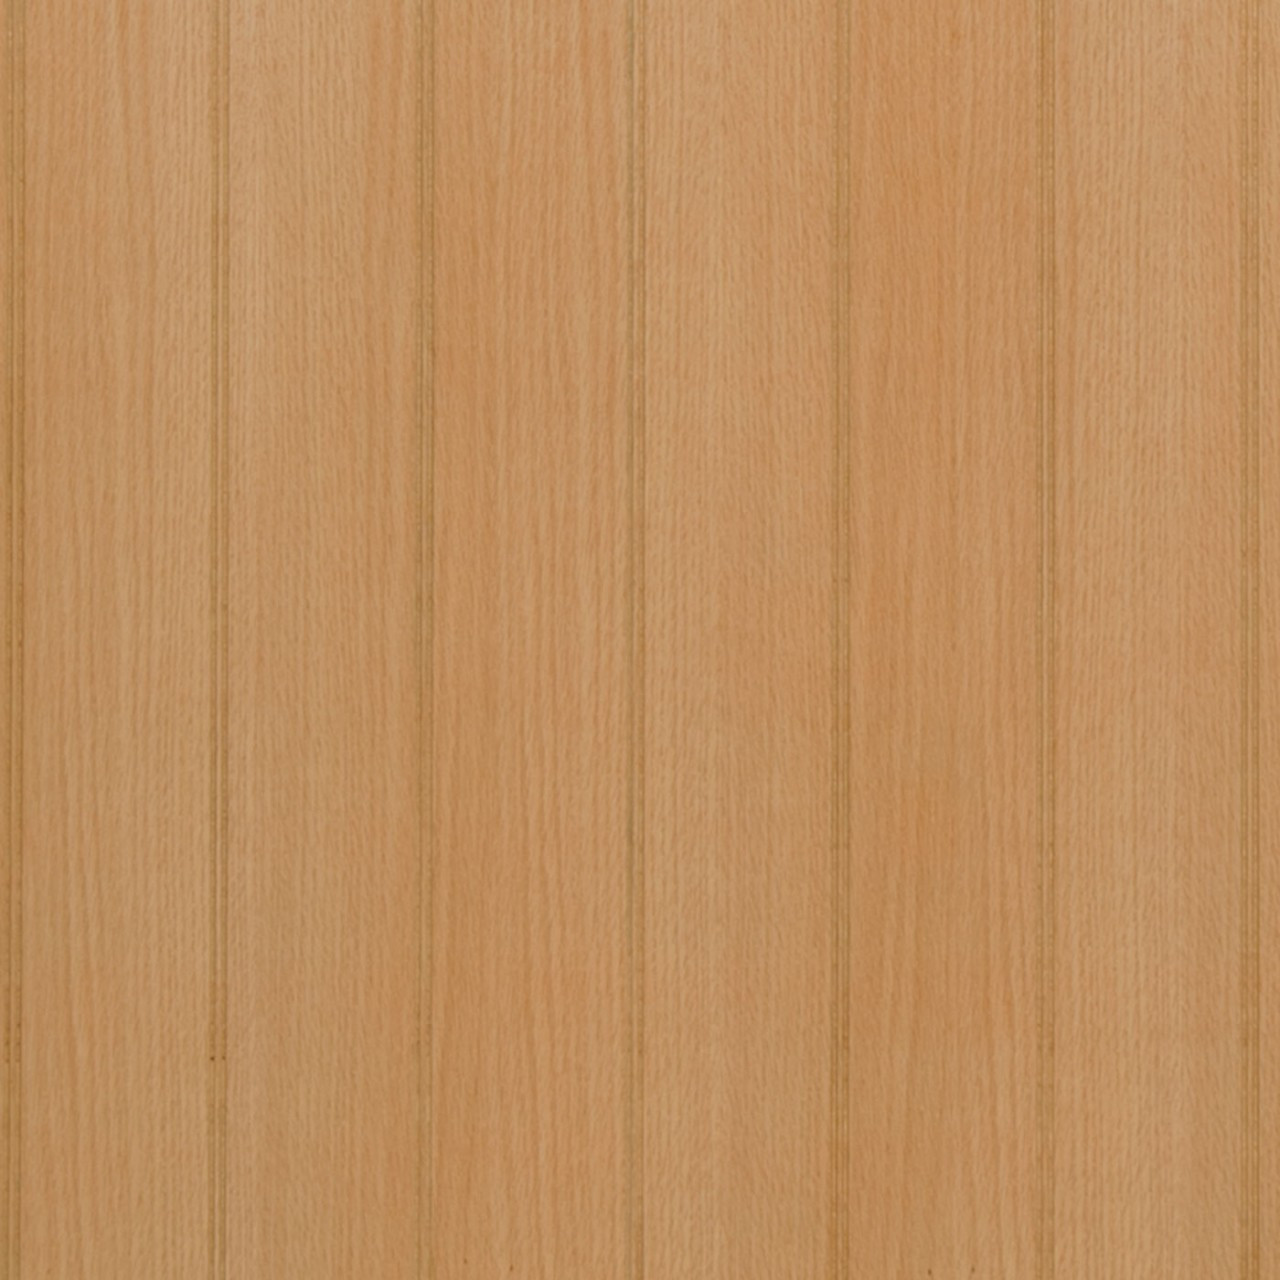 Red Oak 4 Beadboard Paneling Unfinished Veneer